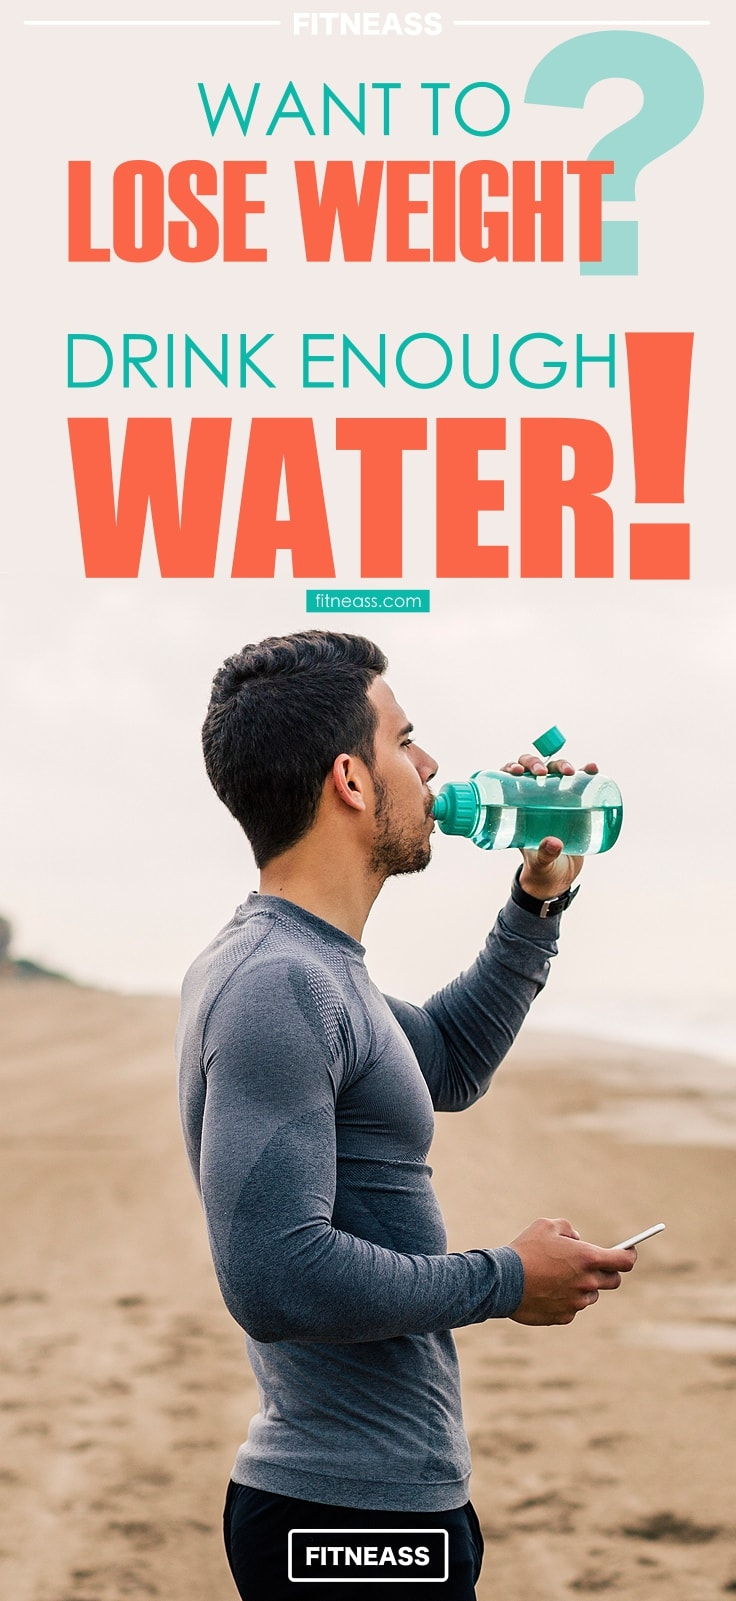 The Weight Loss Factors - Hydration